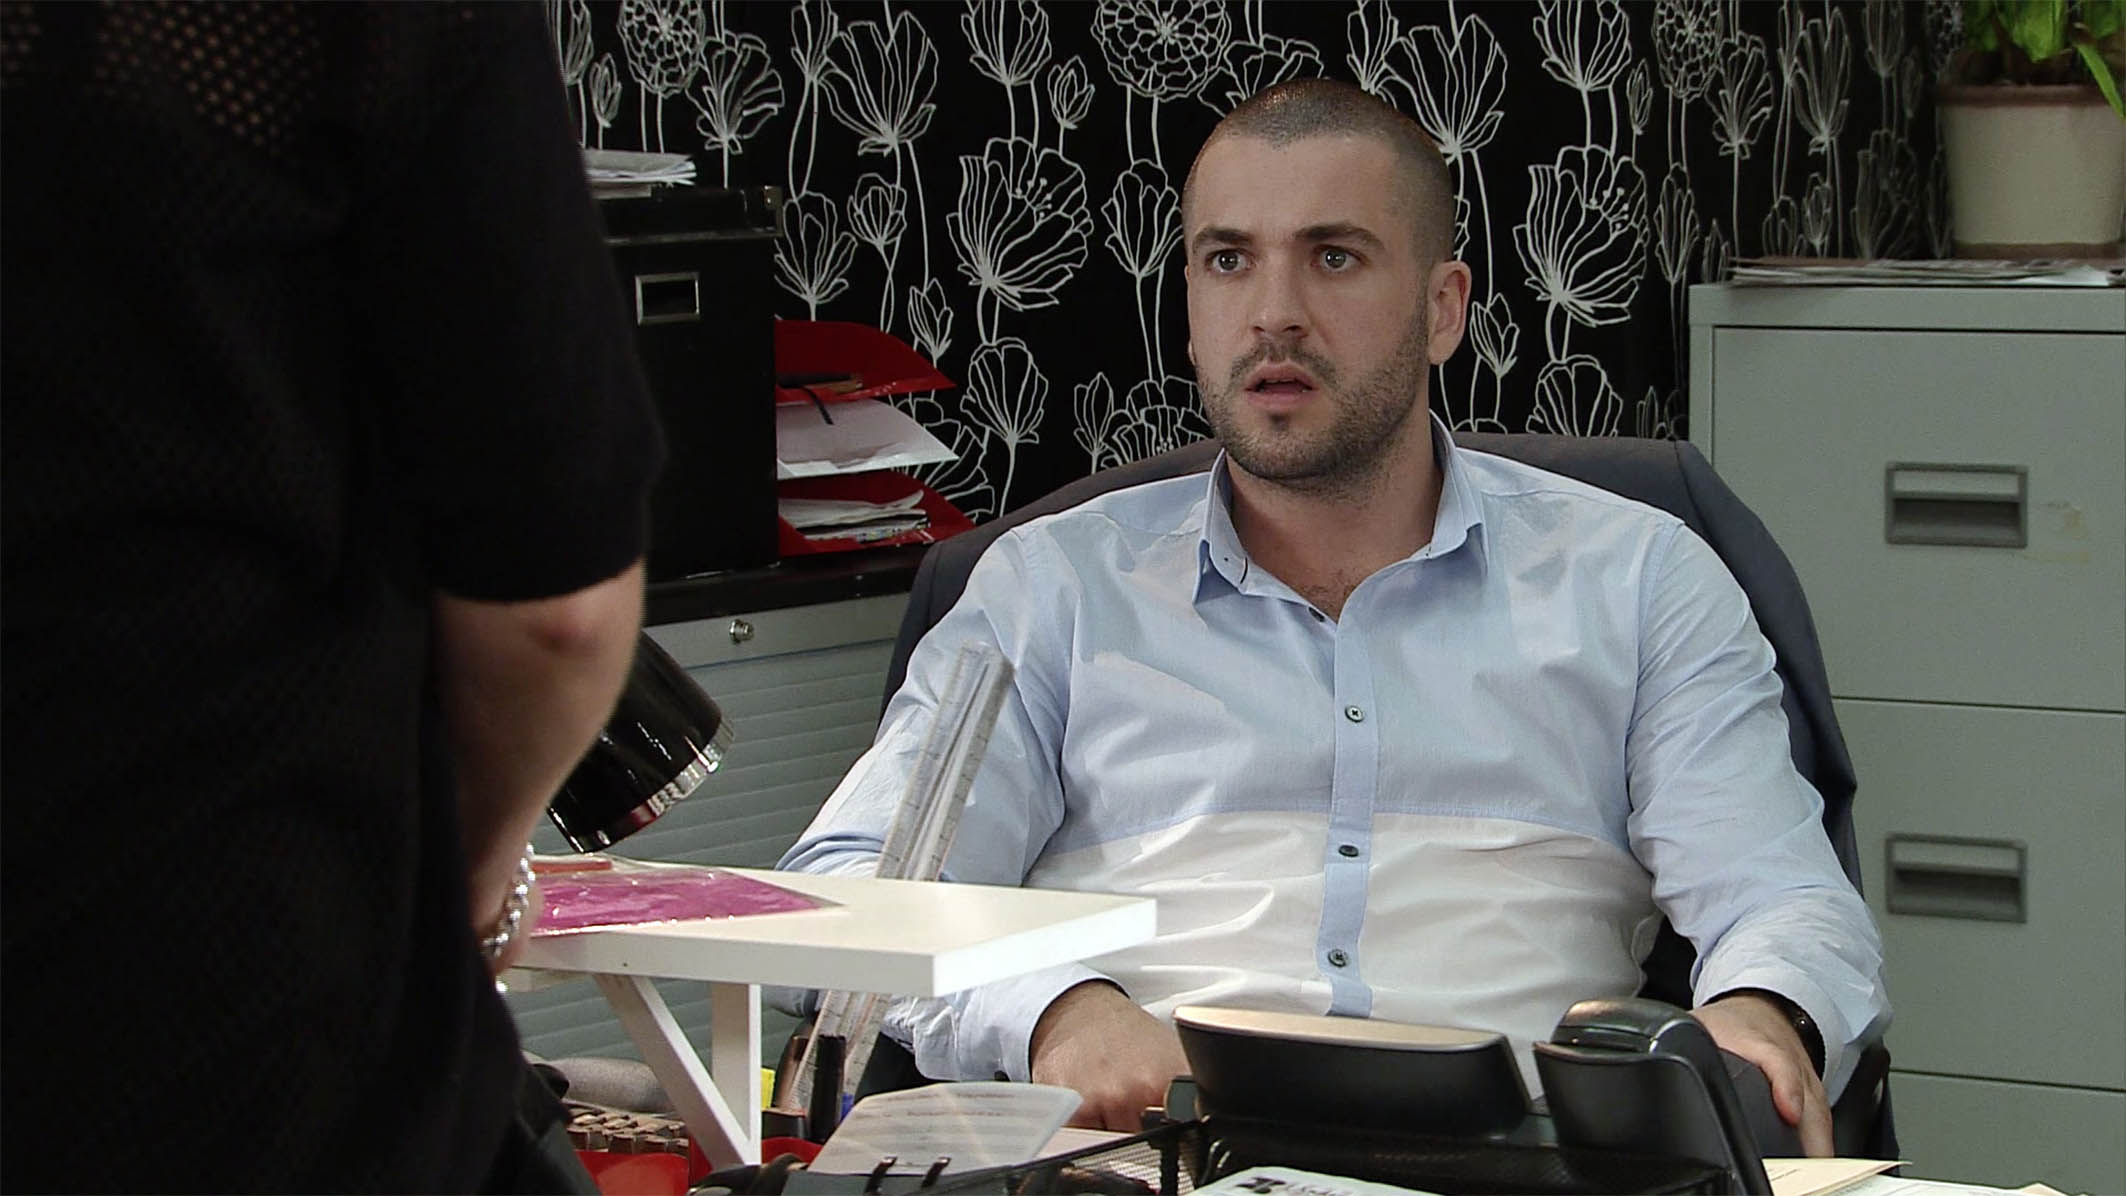 FROM ITV STRICT EMBARGO -TV Listings Magazines & websites Tuesday 18 August 2015, Newspapers Saturday 22 August 2015 Coronation Street - Ep 8717 Wednesday 26 August 2015 When Carla leaves Aidan Connor [SHAYNE WARD] in charge of the factory, Nick suspects that she's heading to the casino. Alya Nazir [SAIR KHAN] is amused by Aidan's attempts to deal with an irate client. Picture contact: david.crook@itv.com on 0161 952 6214 This photograph is (C) ITV Plc and can only be reproduced for editorial purposes directly in connection with the programme or event mentioned above, or ITV plc. Once made available by ITV plc Picture Desk, this photograph can be reproduced once only up until the transmission [TX] date and no reproduction fee will be charged. Any subsequent usage may incur a fee. This photograph must not be manipulated [excluding basic cropping] in a manner which alters the visual appearance of the person photographed deemed detrimental or inappropriate by ITV plc Picture Desk. This photograph must not be syndicated to any other company, publication or website, or permanently archived, without the express written permission of ITV Plc Picture Desk. Full Terms and conditions are available on the website www.itvpictures.com